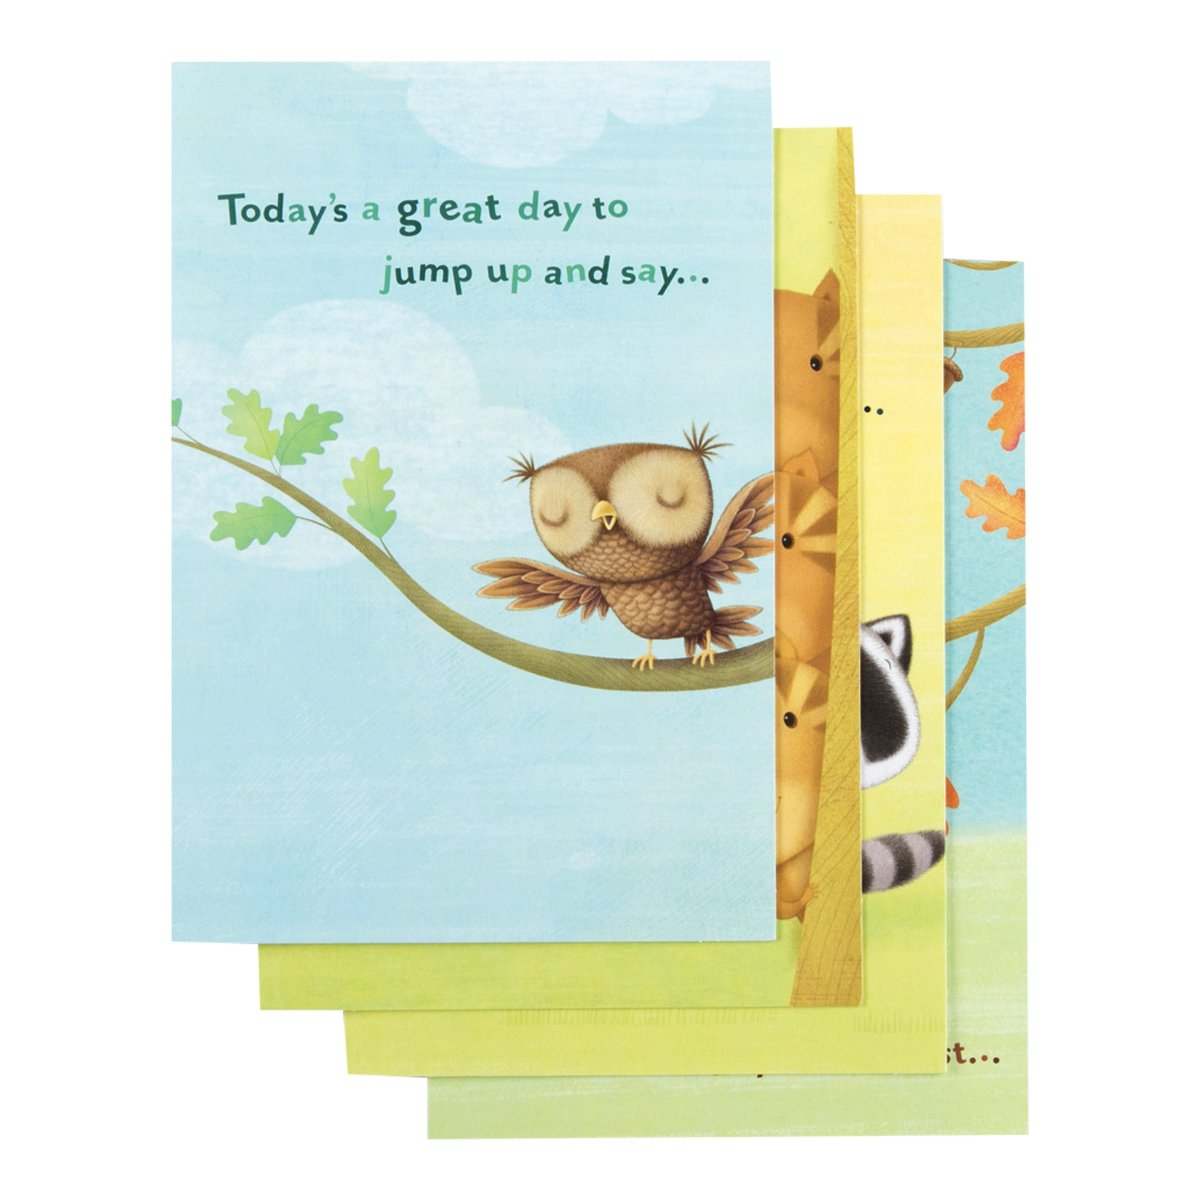 Birthday - Inspirational Boxed Cards - Happy Critters DaySpring Company 36622